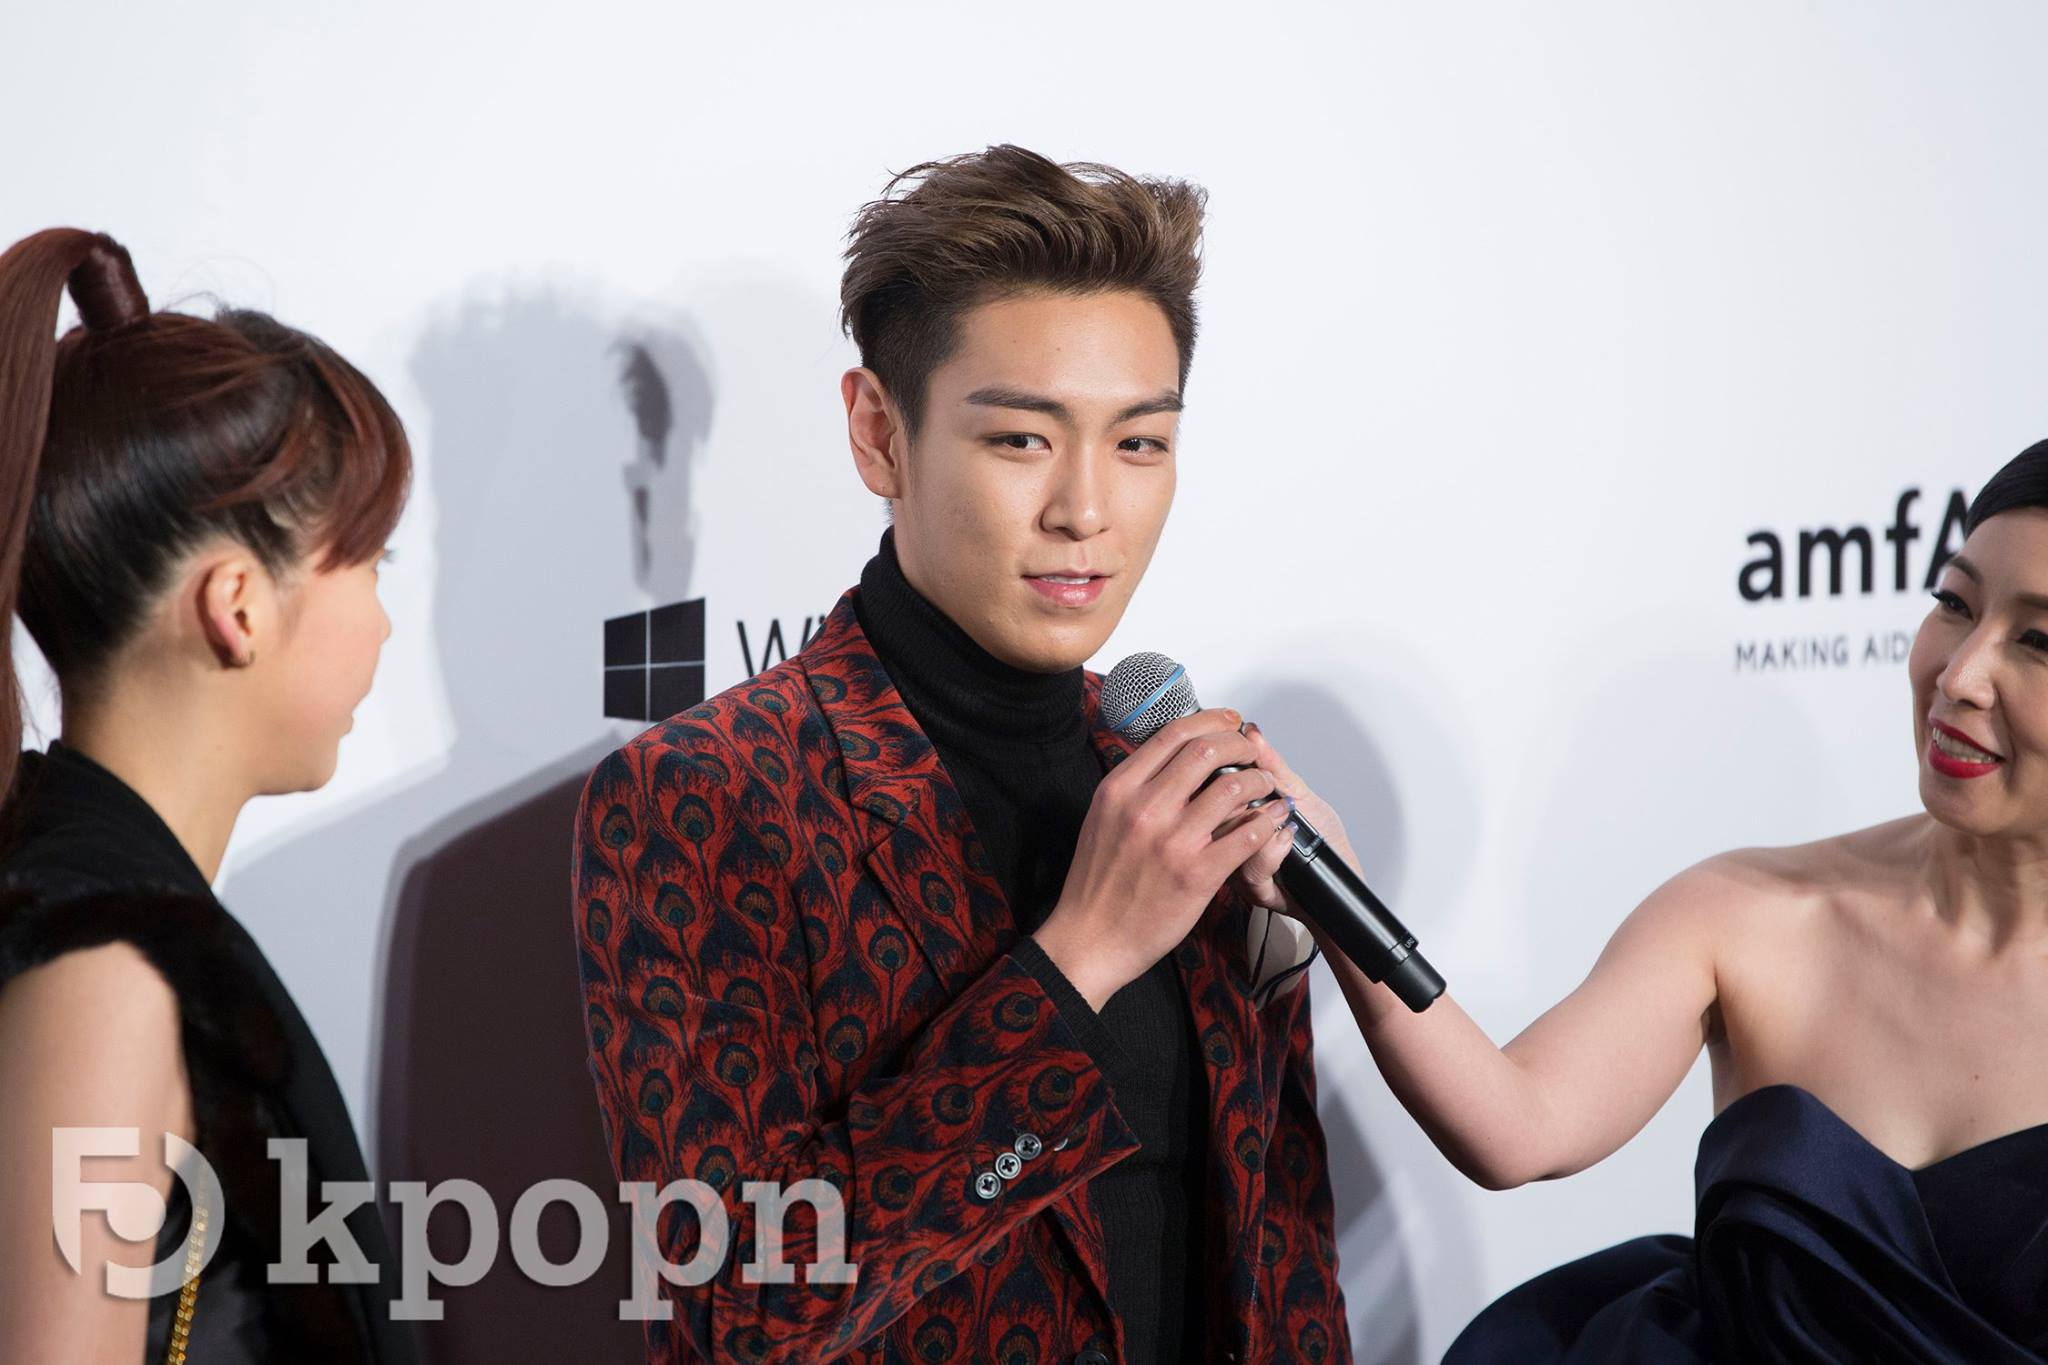 TOP amfAR Hong Kong by KPopcn 2015-03-14 005.jpg